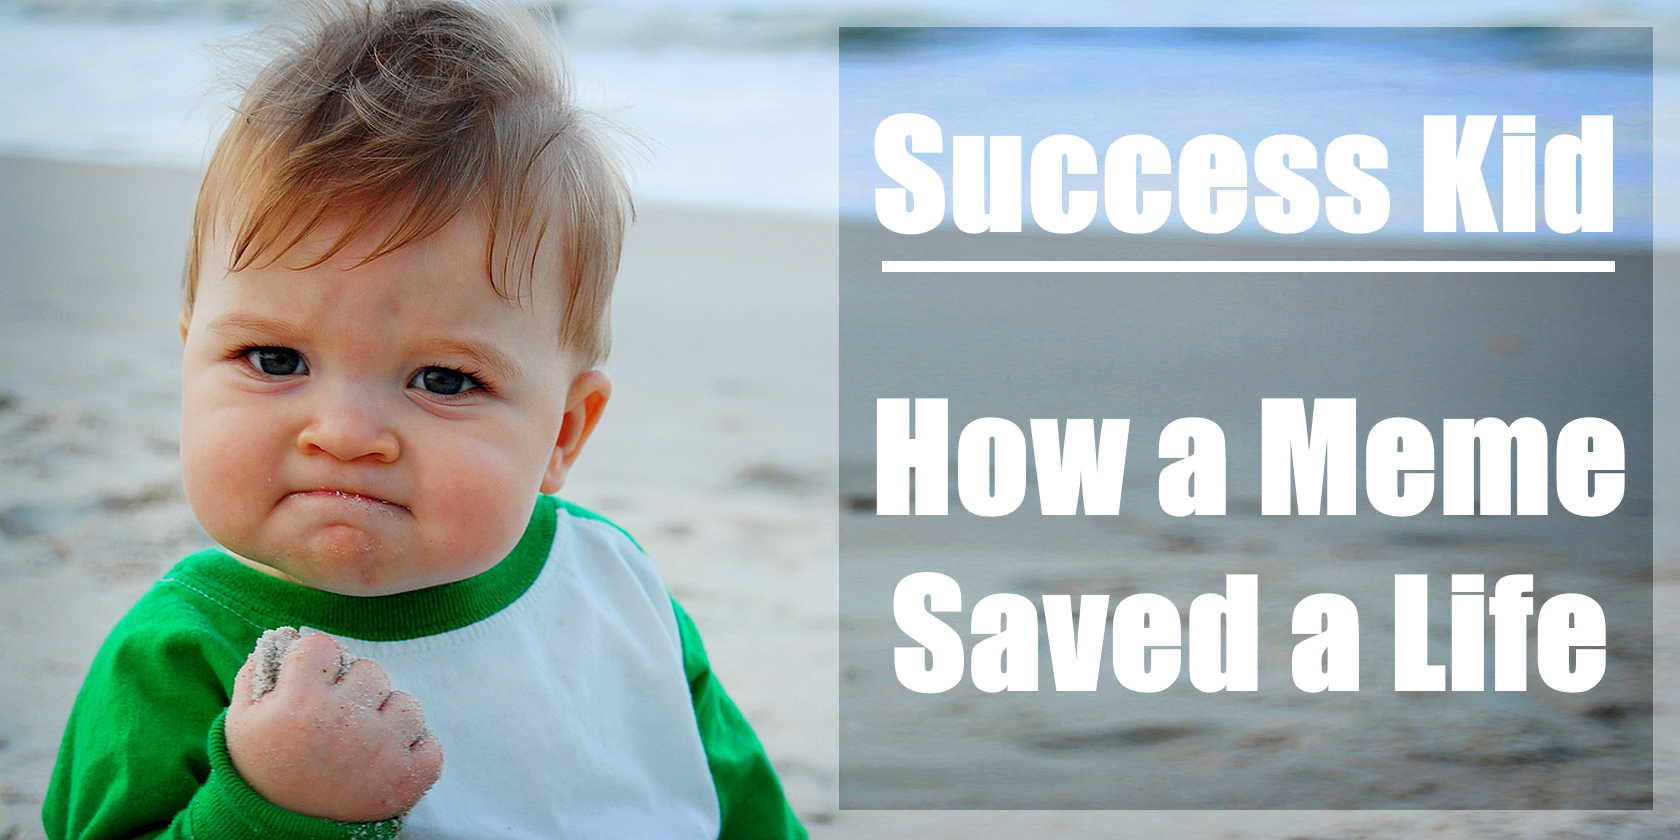 How Success Kid's Internet Fame Saved His Dad's Life